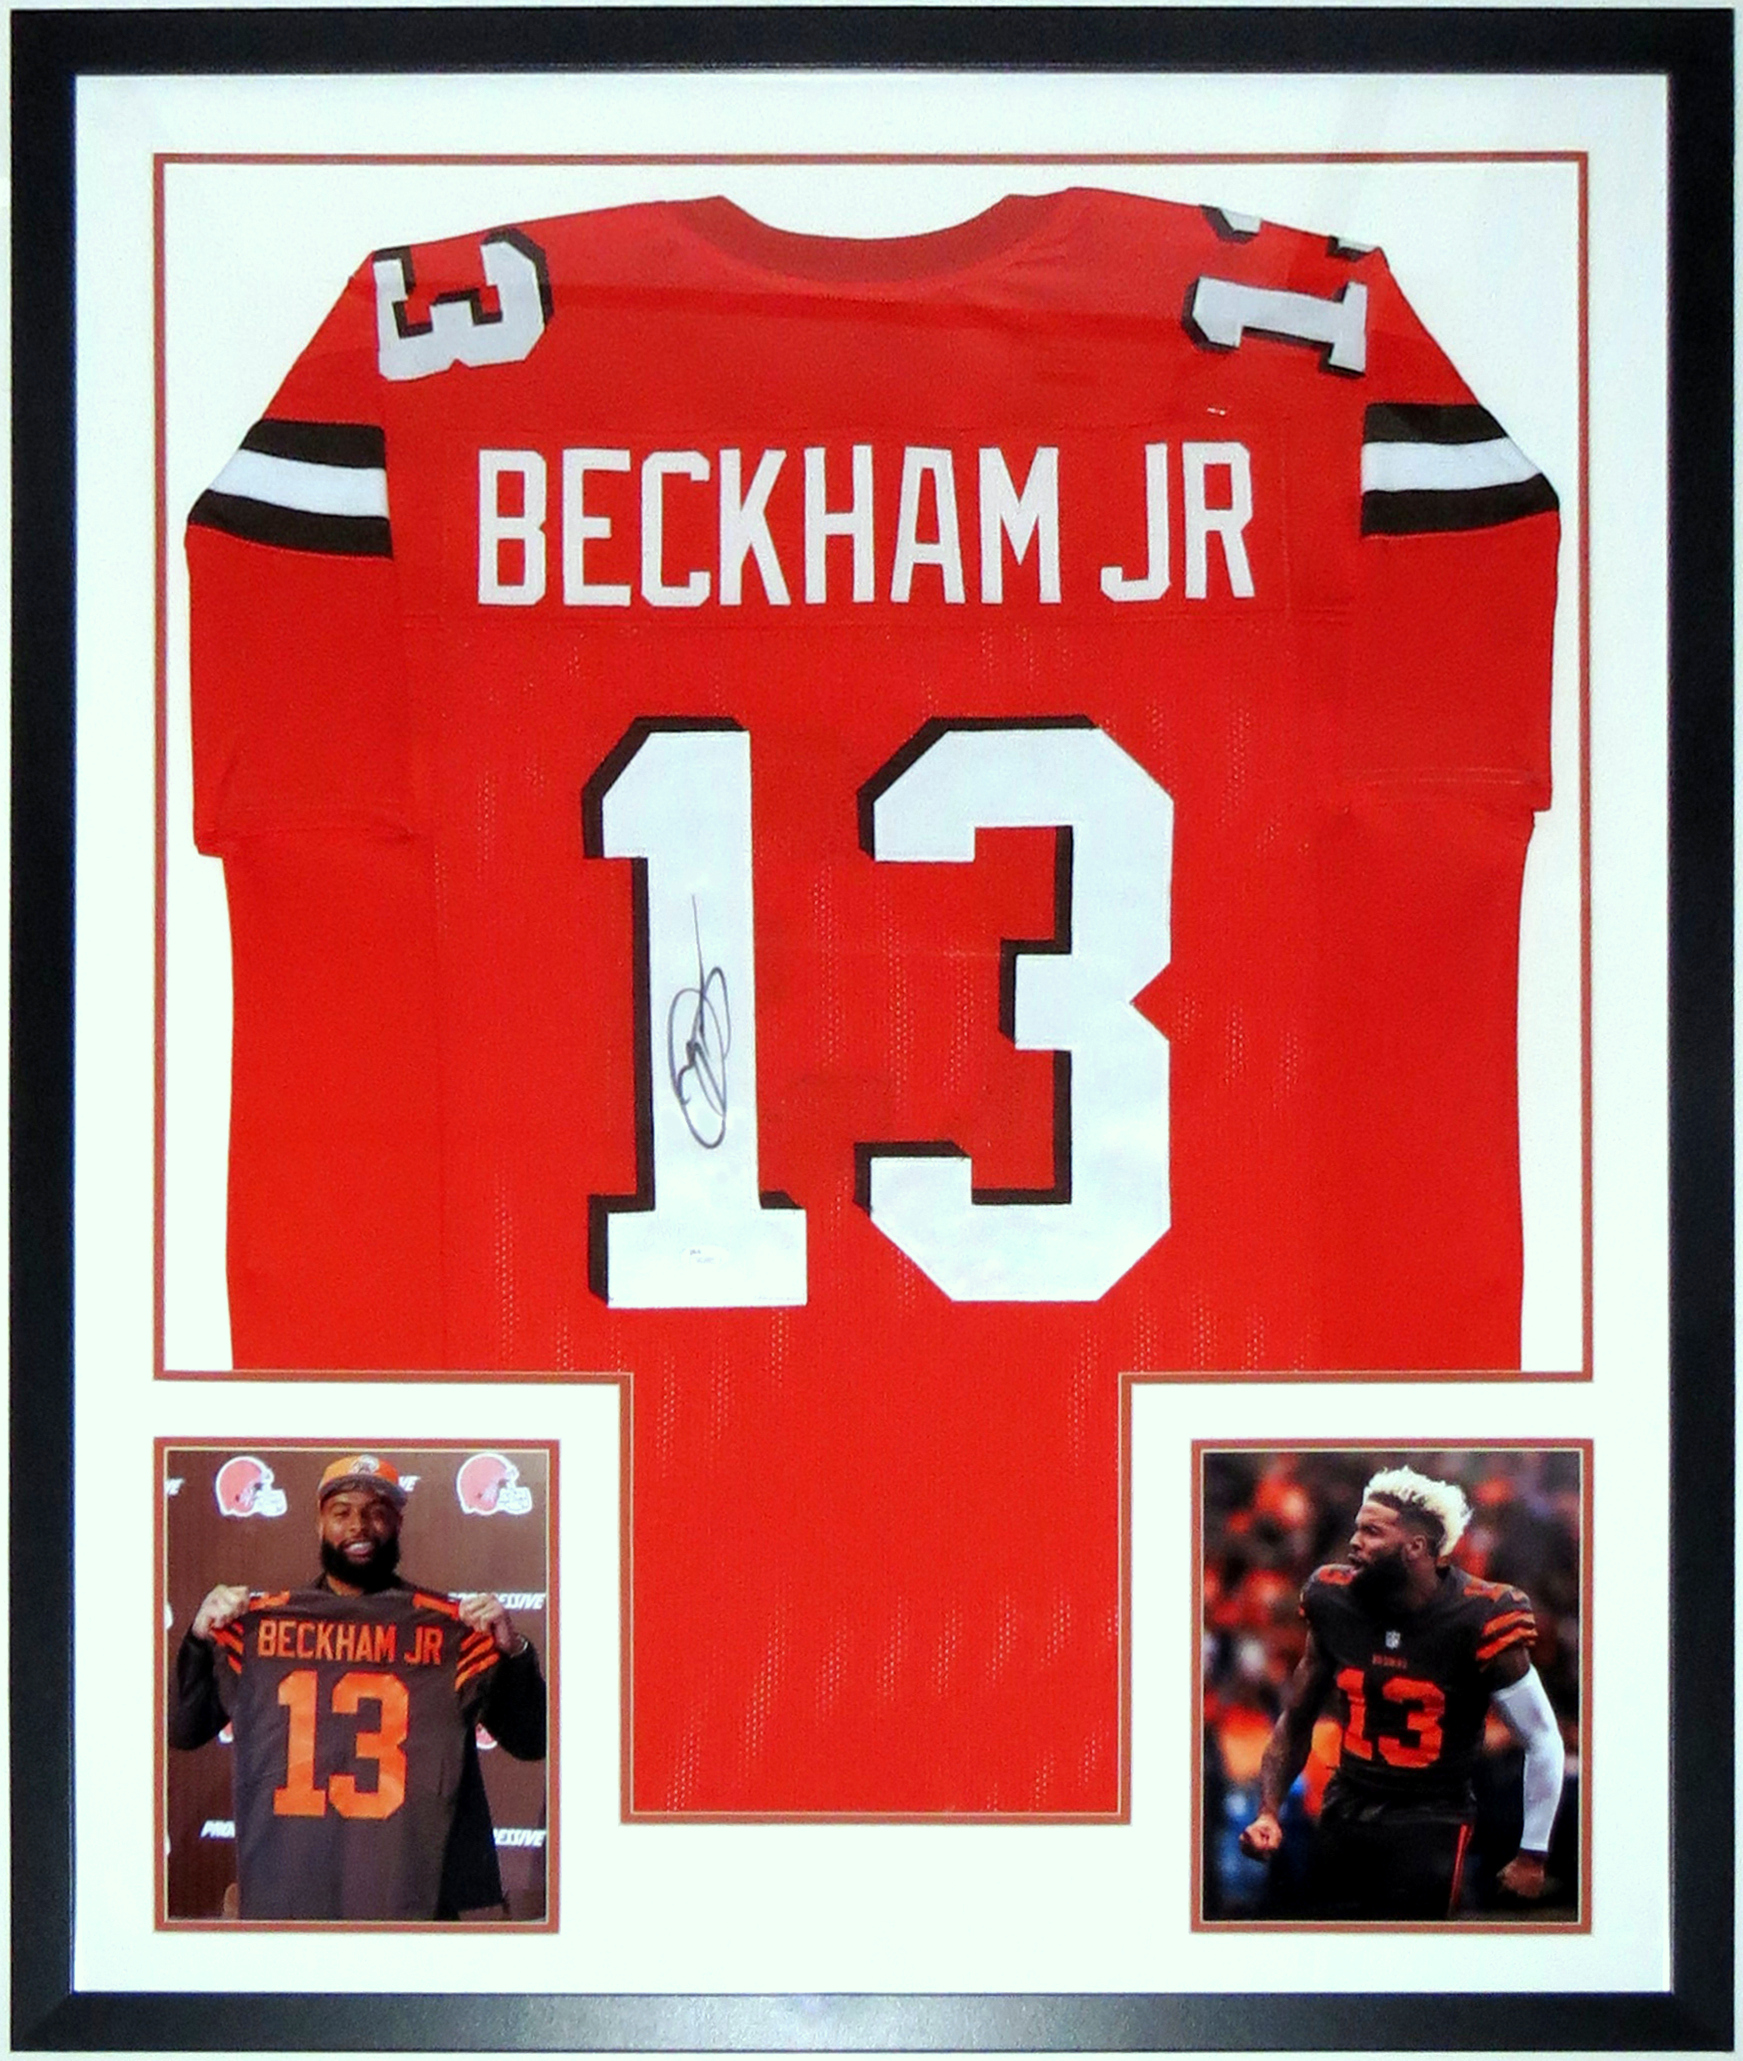 Odell Beckham Jr Signed 2019 Cleveland Browns Jersey - JSA COA Authenticated - Professionally Framed & 2 8x10 Photo 34x42